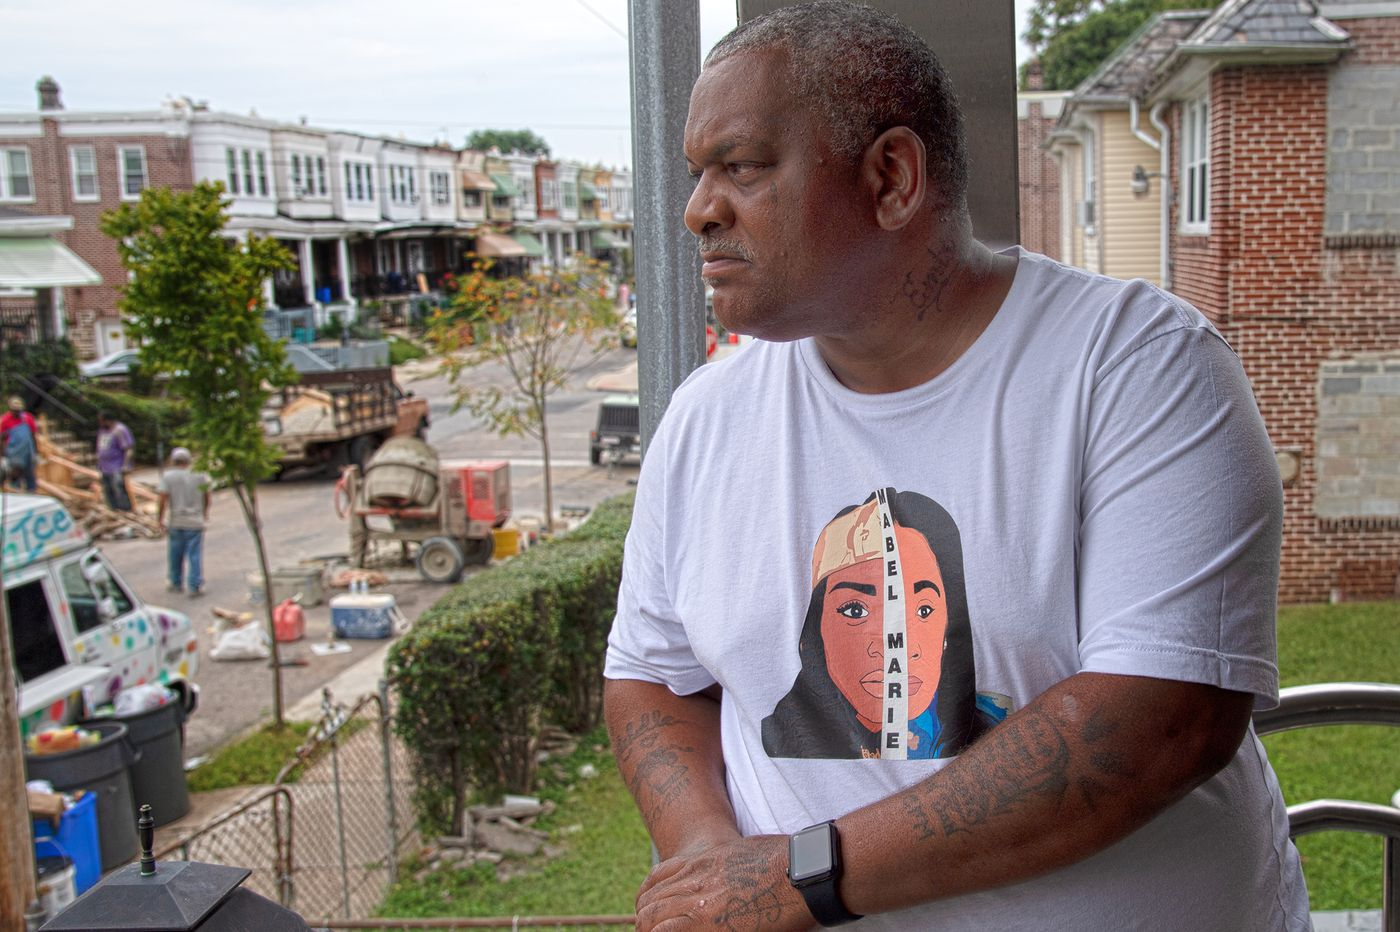 Philly police didn't have to shoot mentally ill man behaving erratically in Kensington | Jenice Armstrong